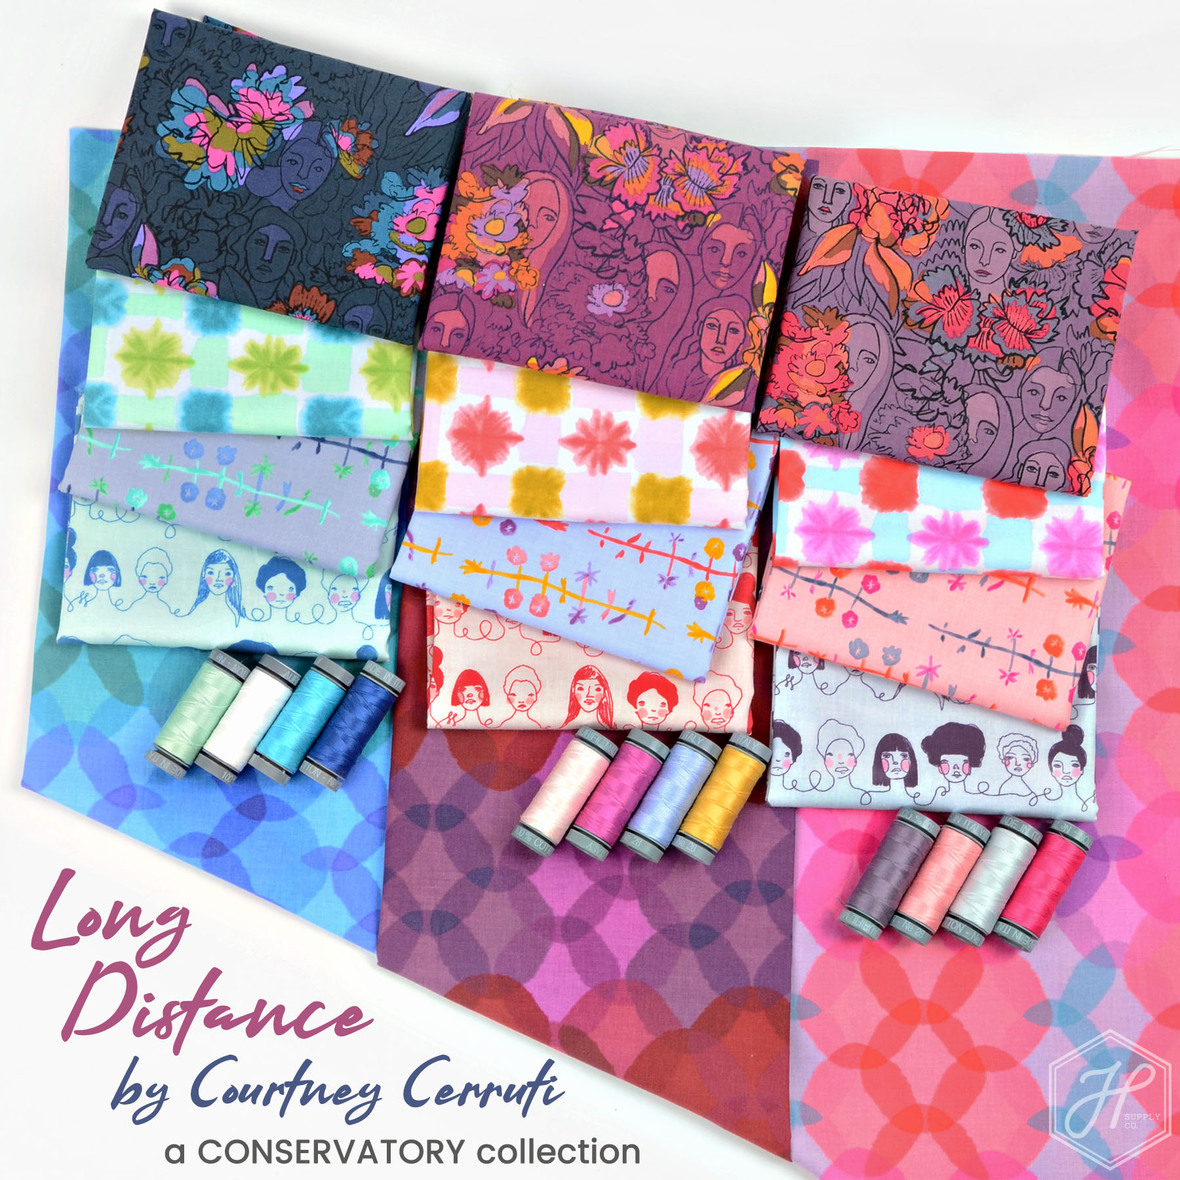 Long Distance fabric Courtney Cerruti for Conservatory at Hawthorne Supply Co